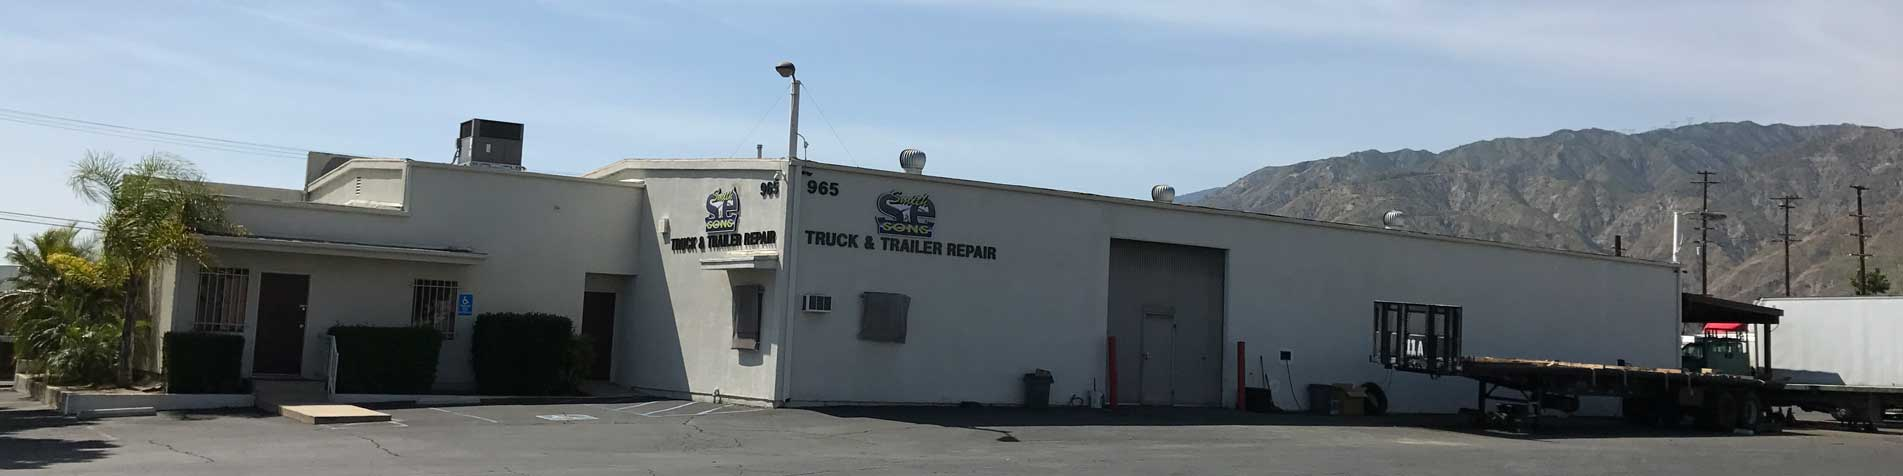 S.E. Smith & Sons Truck Repair Shop in Azusa